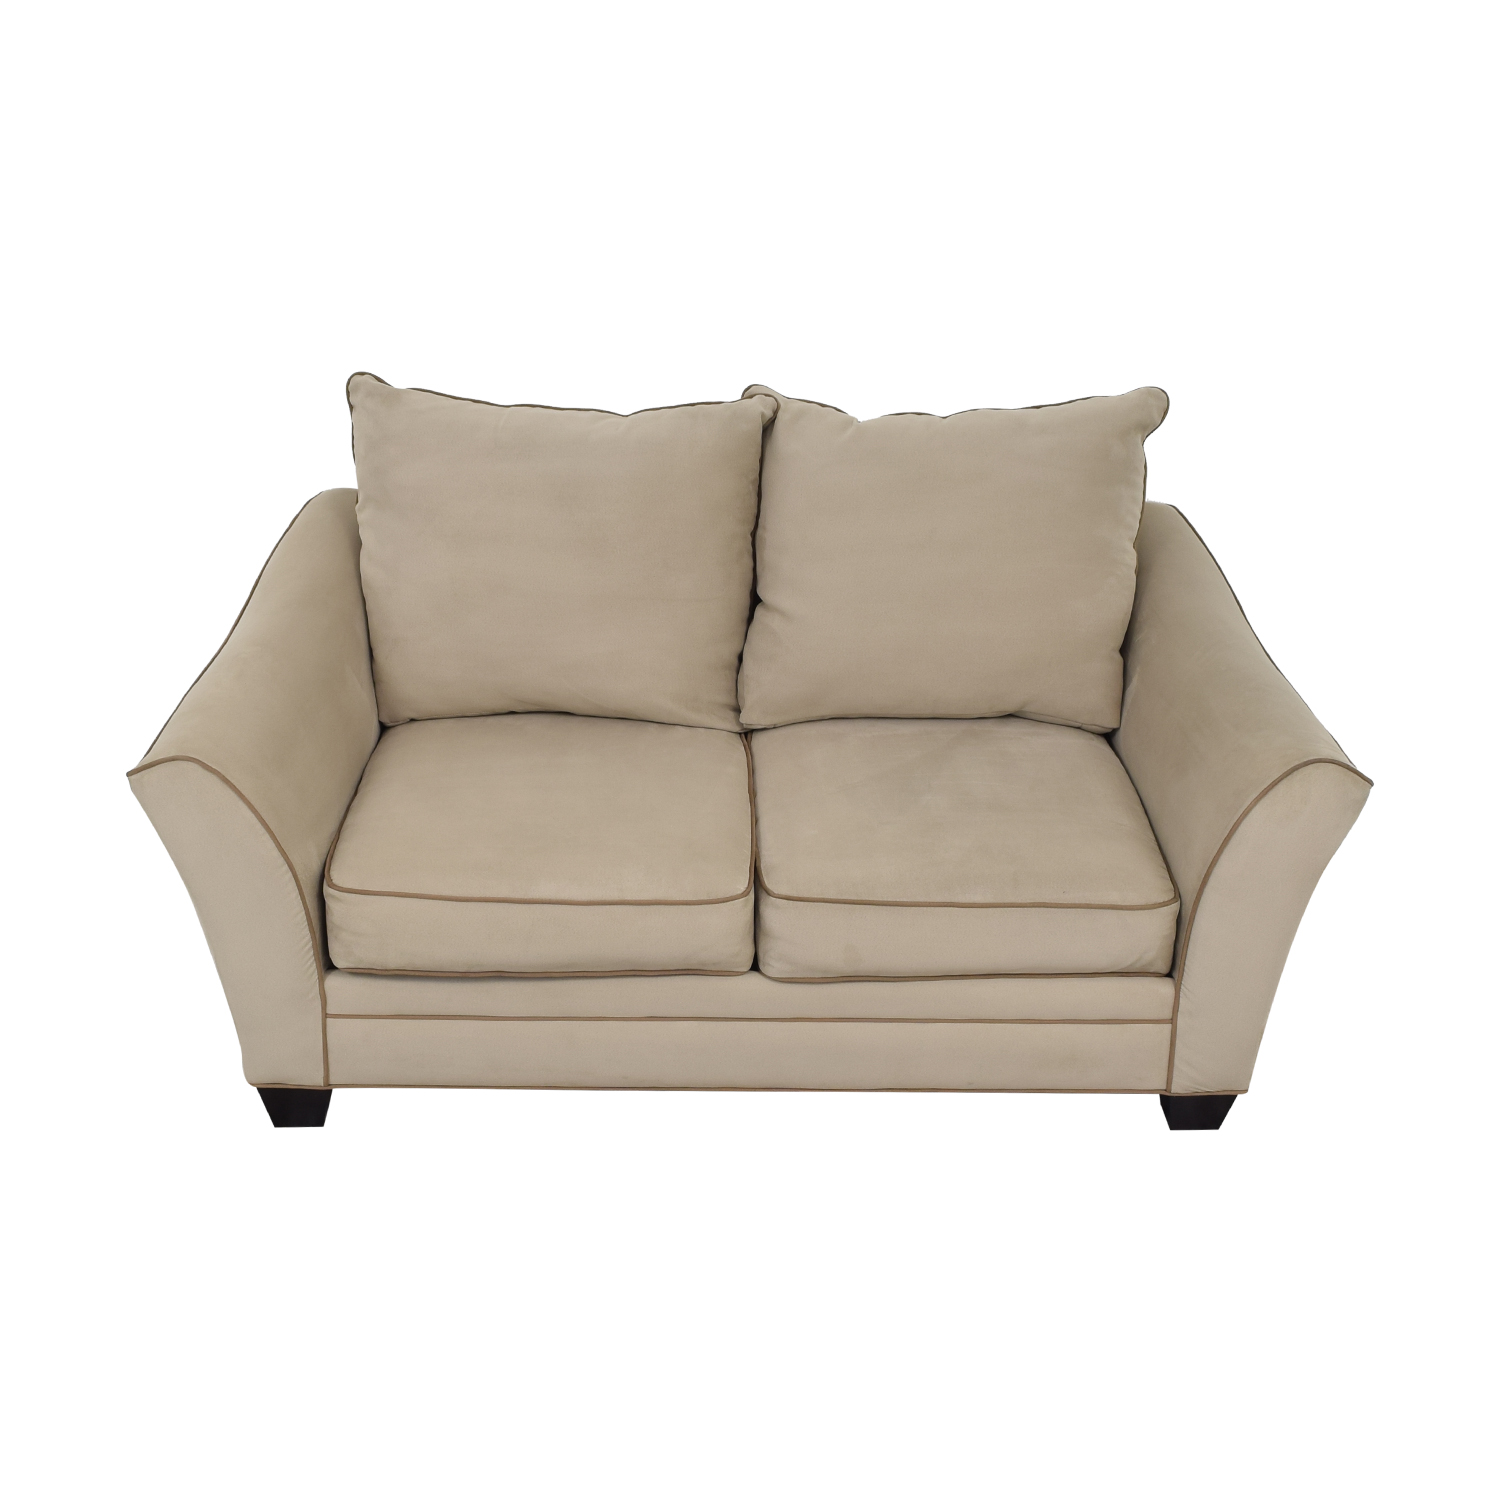 shop Raymour & Flanigan Foresthill Loveseat Raymour & Flanigan